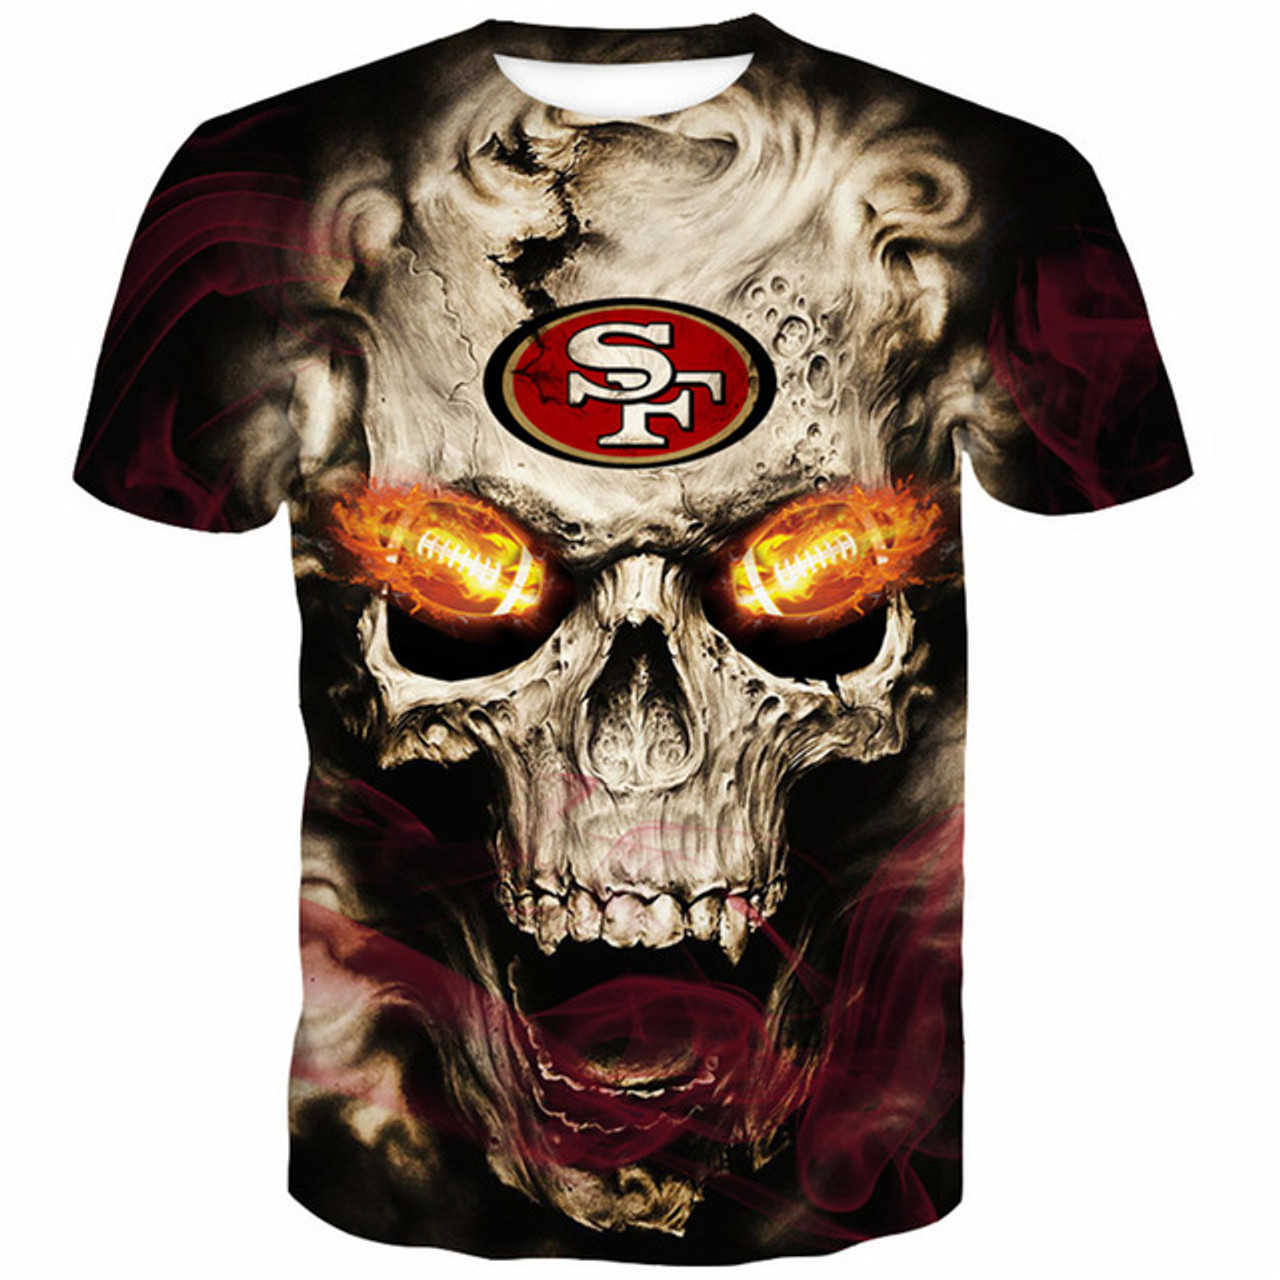 1a7c10f0 **(OFFICIALLY-LICENSED-N.F.L.SAN-FRANCISCO-49ERS-TRENDY-TEES &  NEON-3D-GLOWING-FIERY-49ERS-FOOTBALL-EYES/CUSTOM-3D-EFFECT-GRAPHIC-PRINTED-ALL-OVER-DOU...